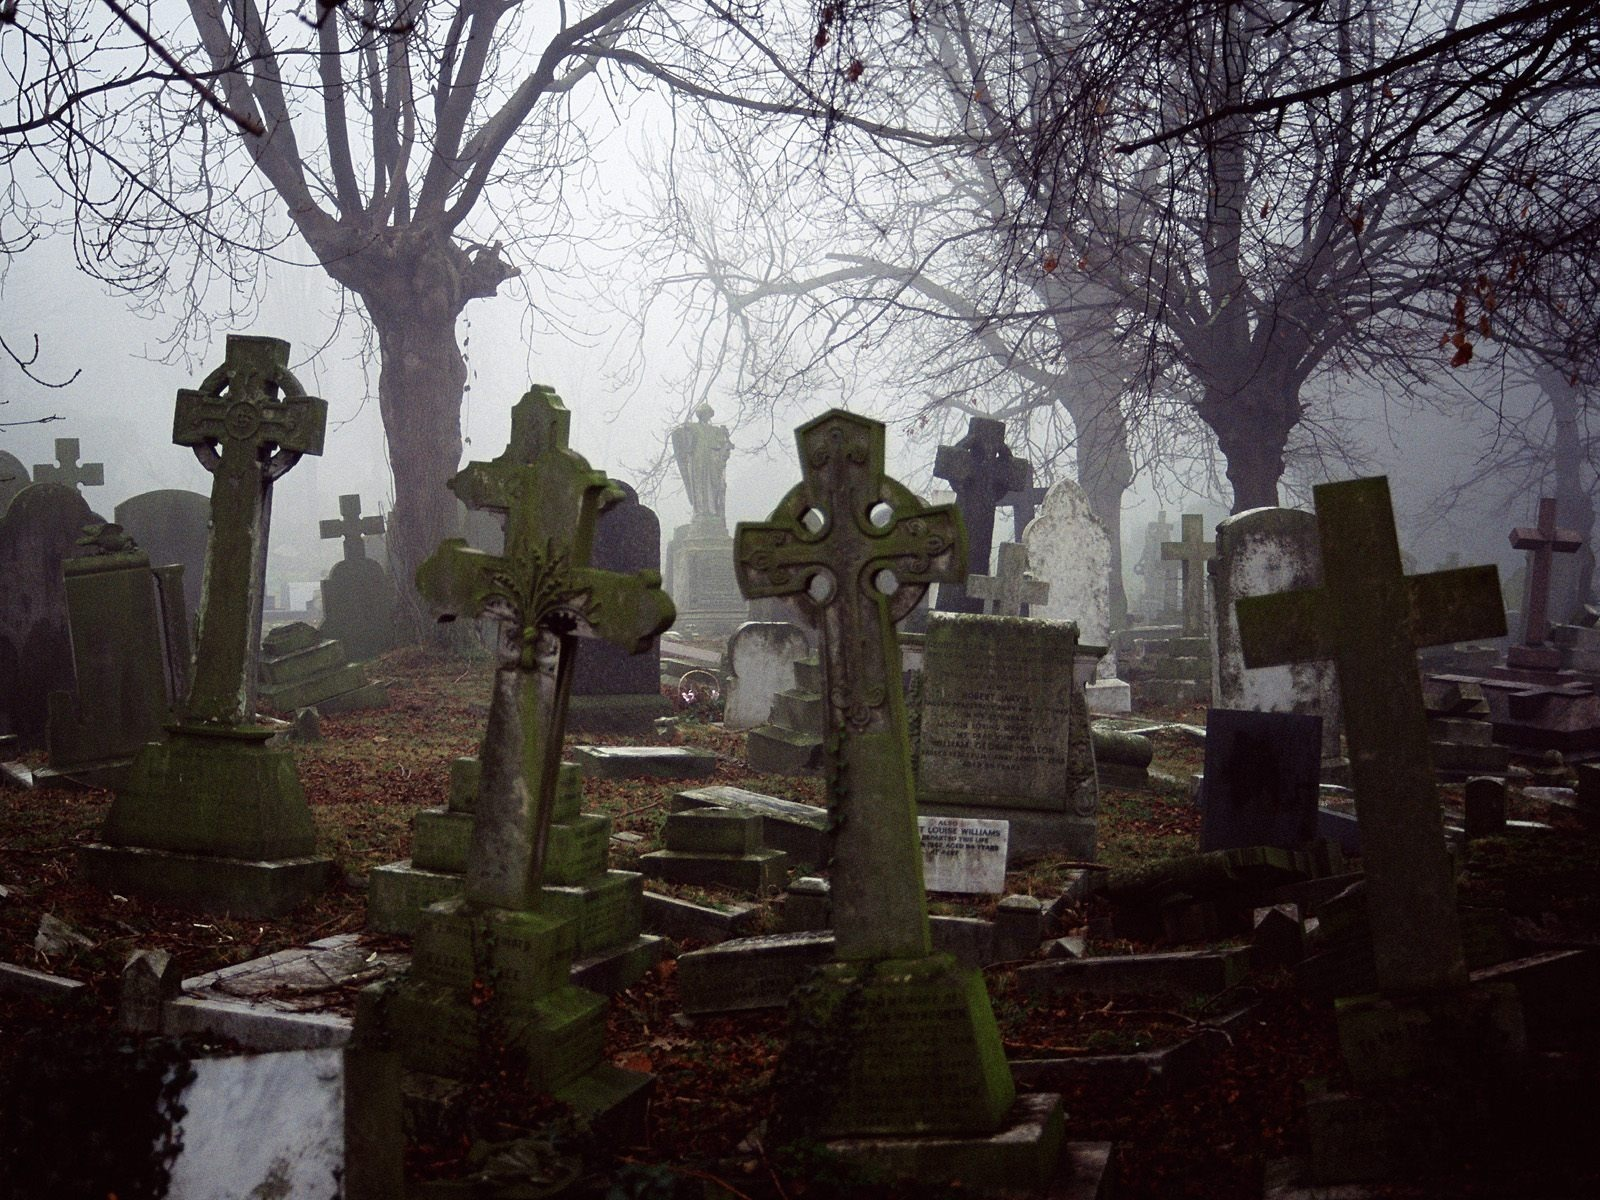 Drawn graveyard spooky graveyard On Photos Spooky about Places